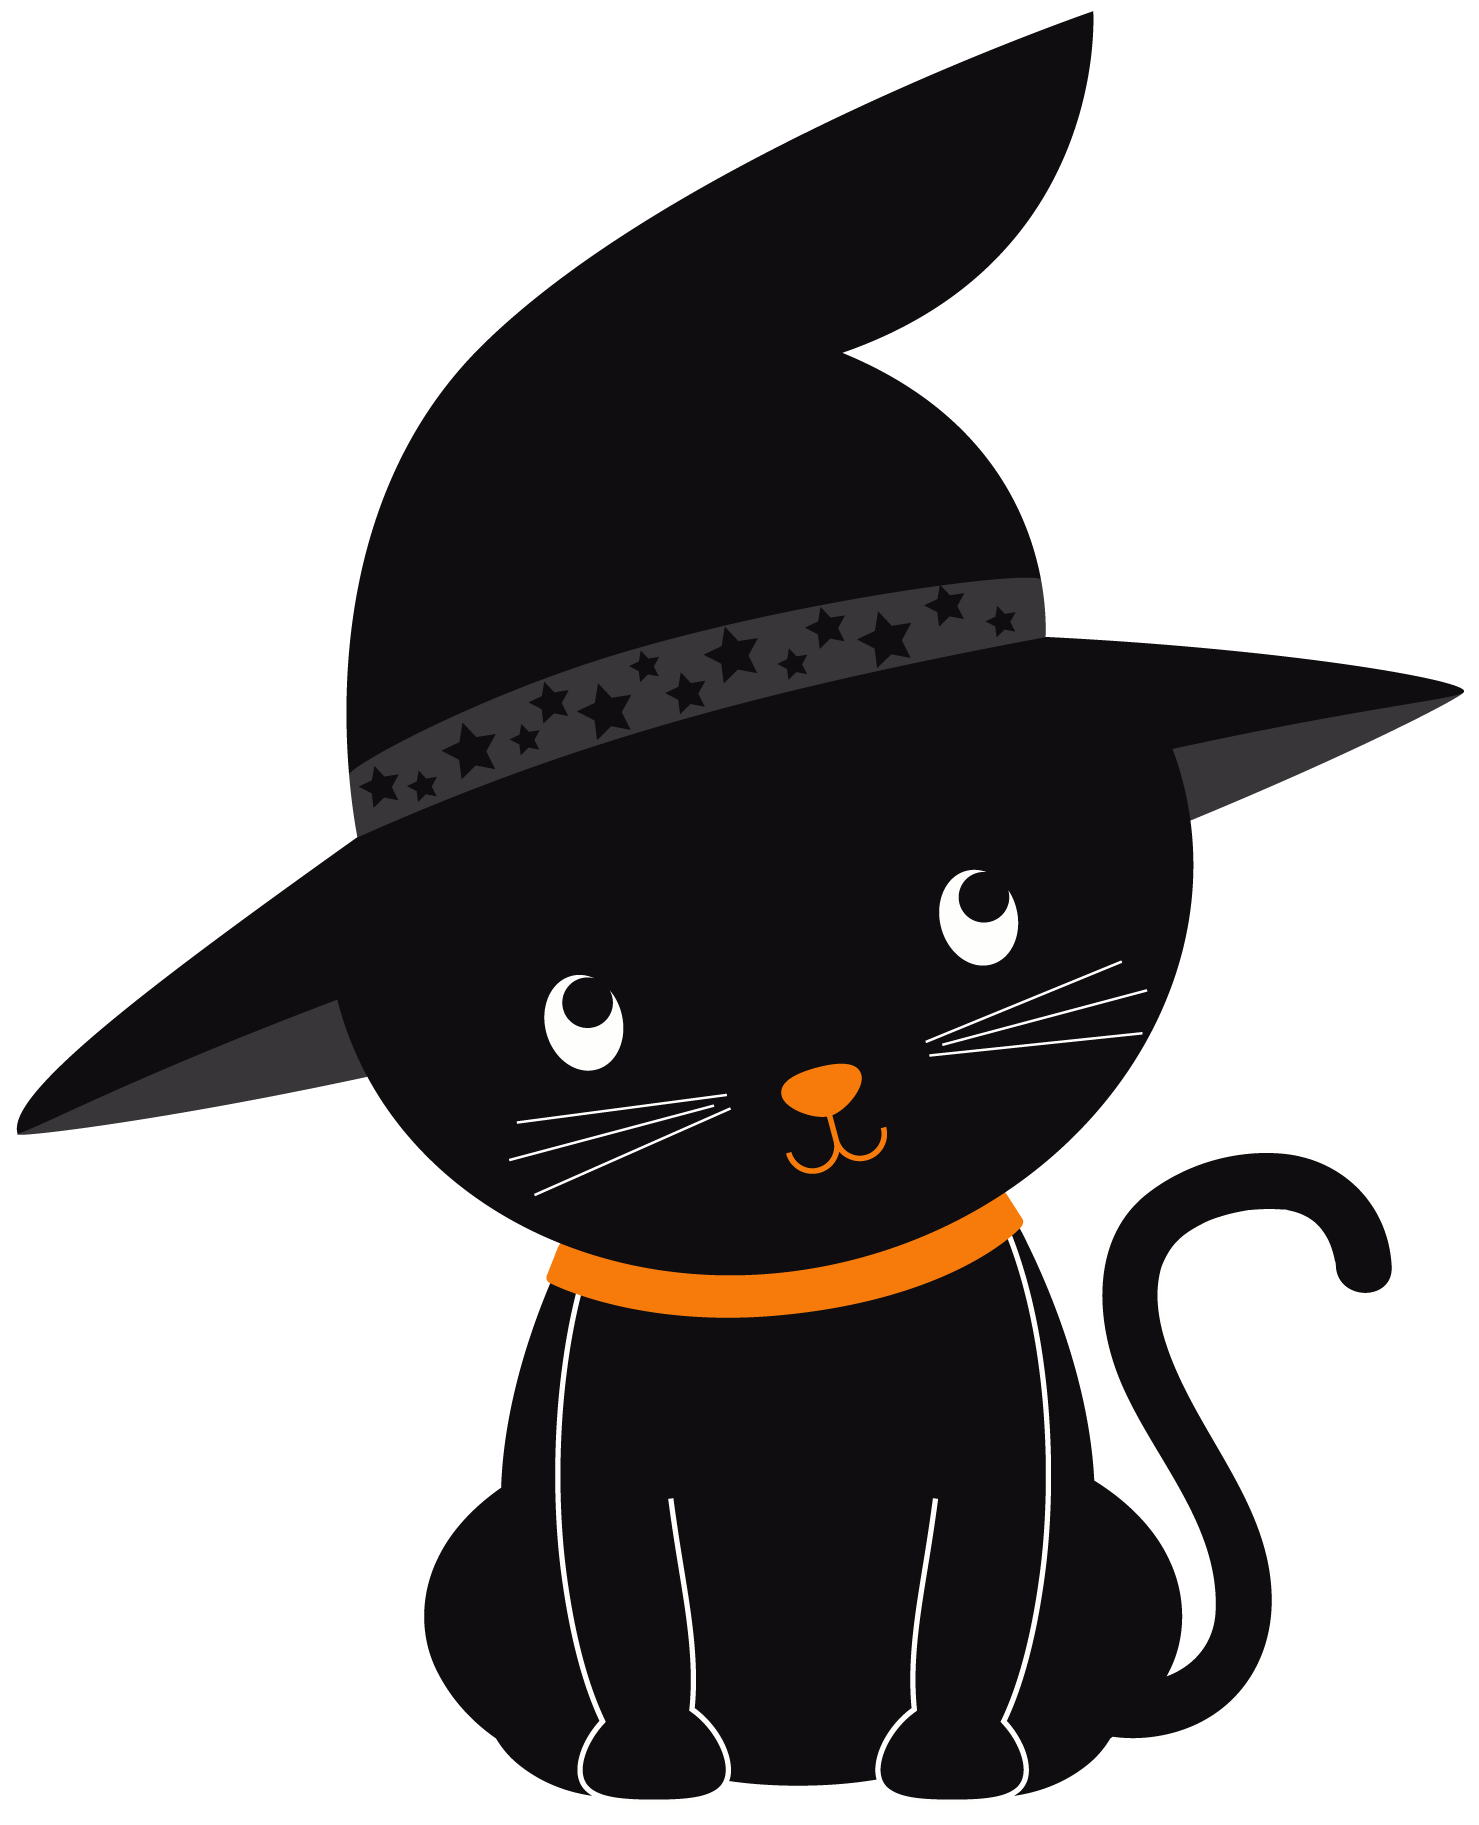 Halloween cat clipart png svg free download Halloween - HalloweenKittenClipArtSet_ID#182-02.png - Minus | felt ... svg free download